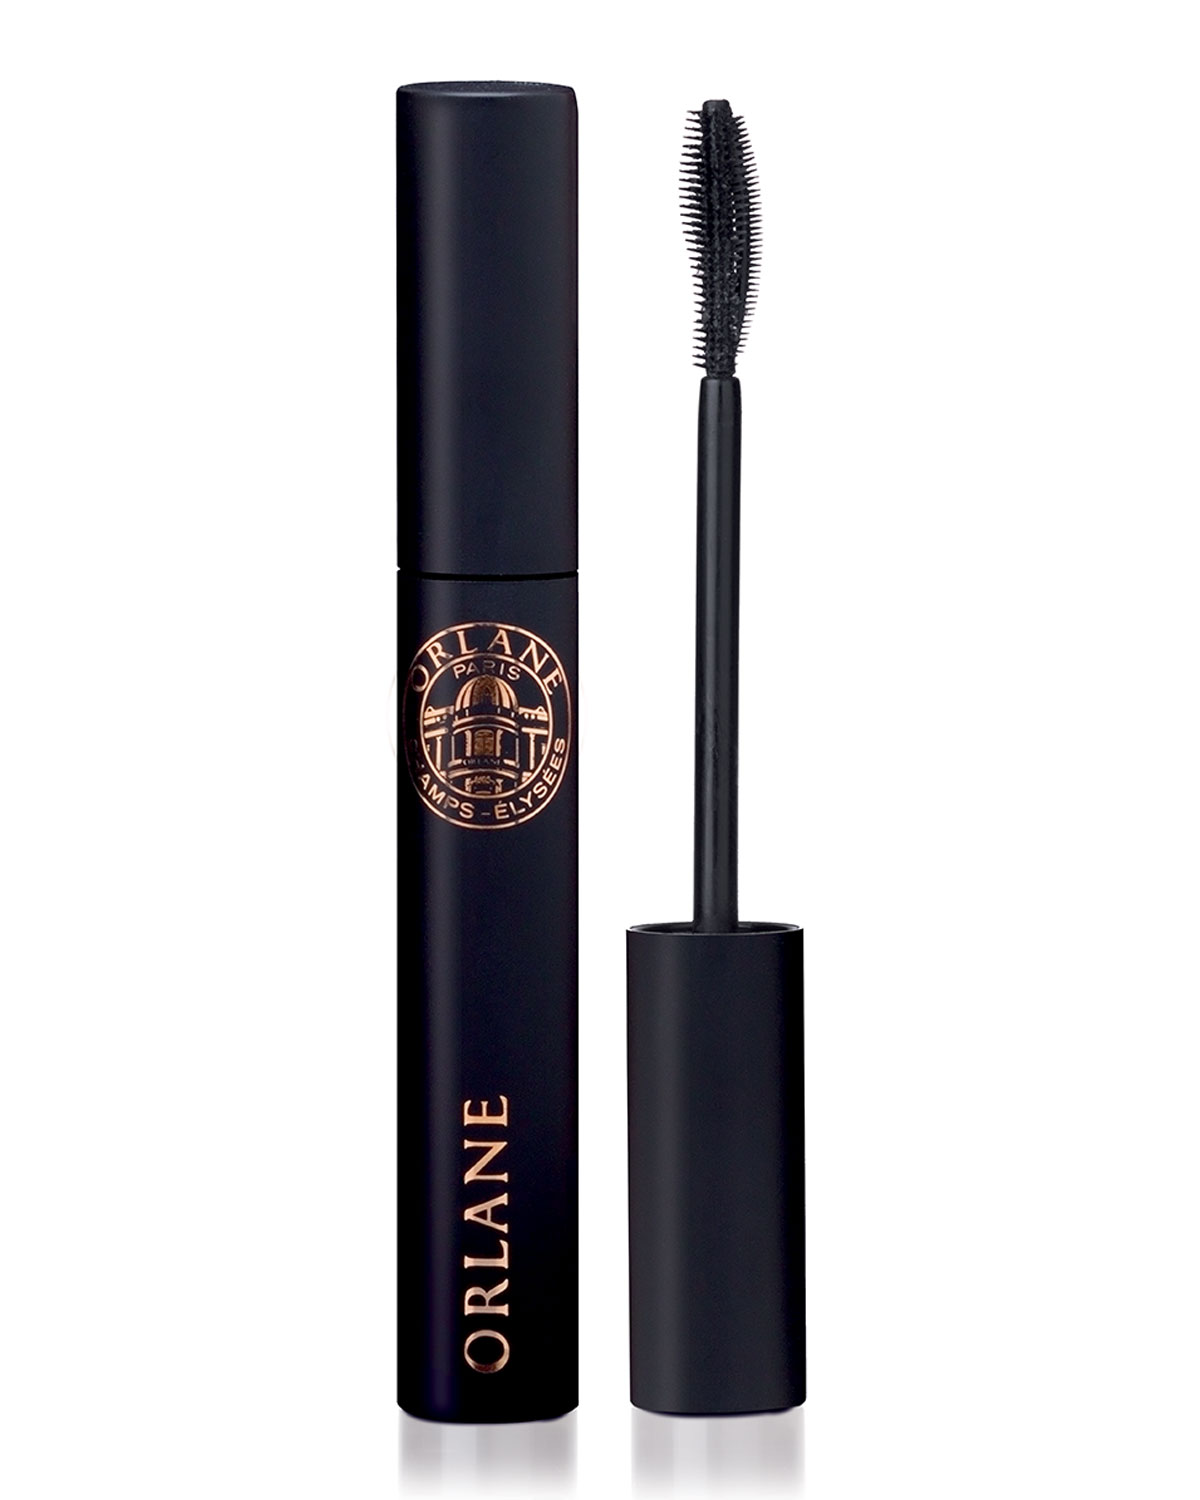 Orlane Panoramic Mascara